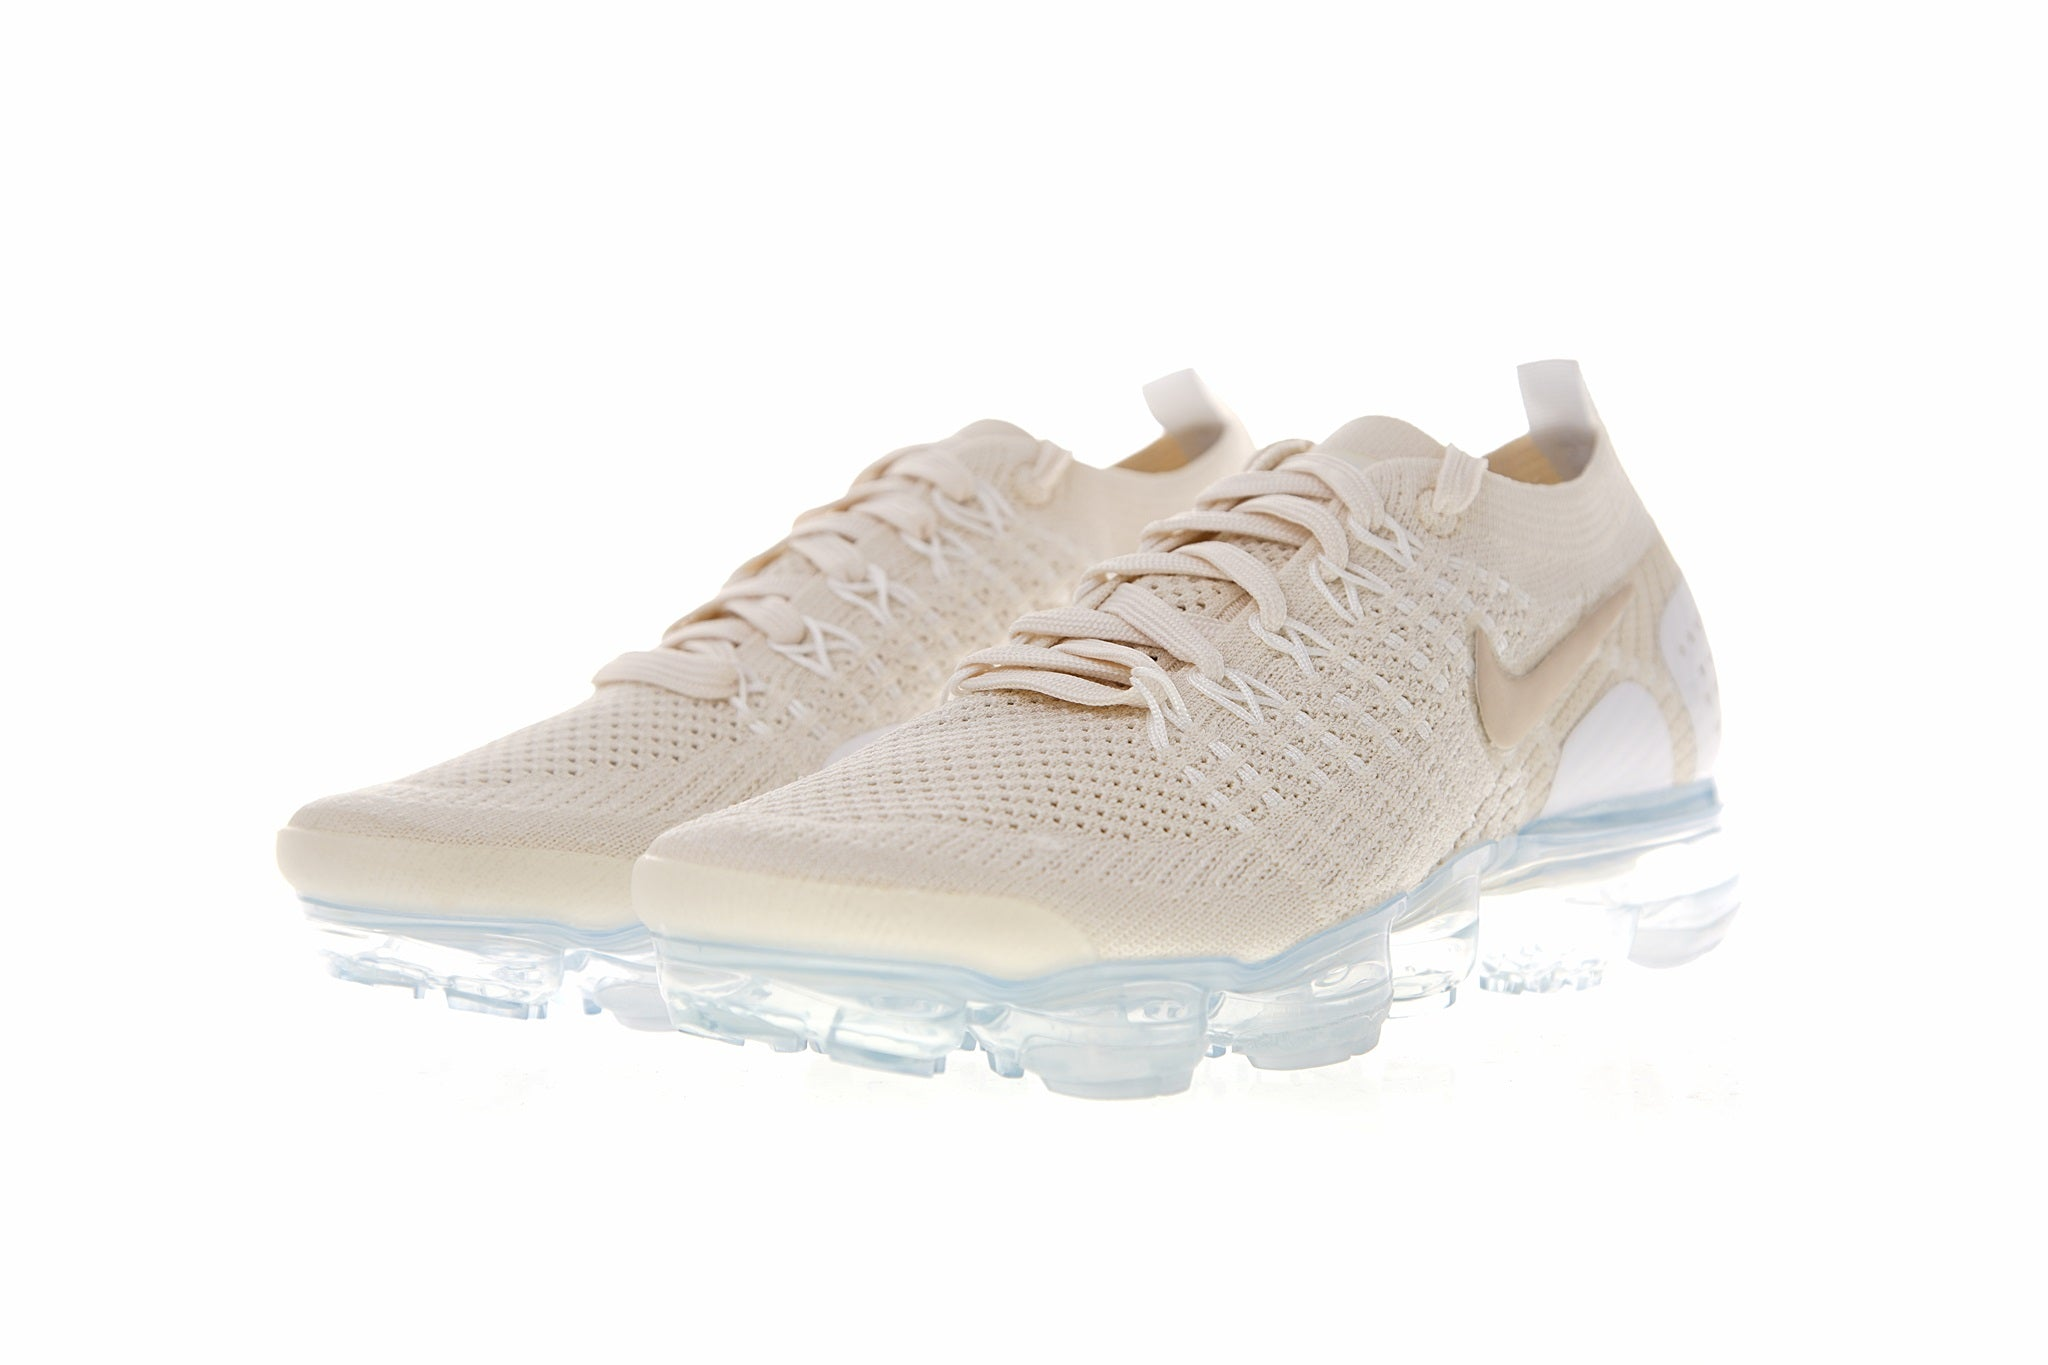 39f991560d159 Nike Air VaporMax Flyknit 2.0 (Campaign Gold) – SPIRIT95 STATION